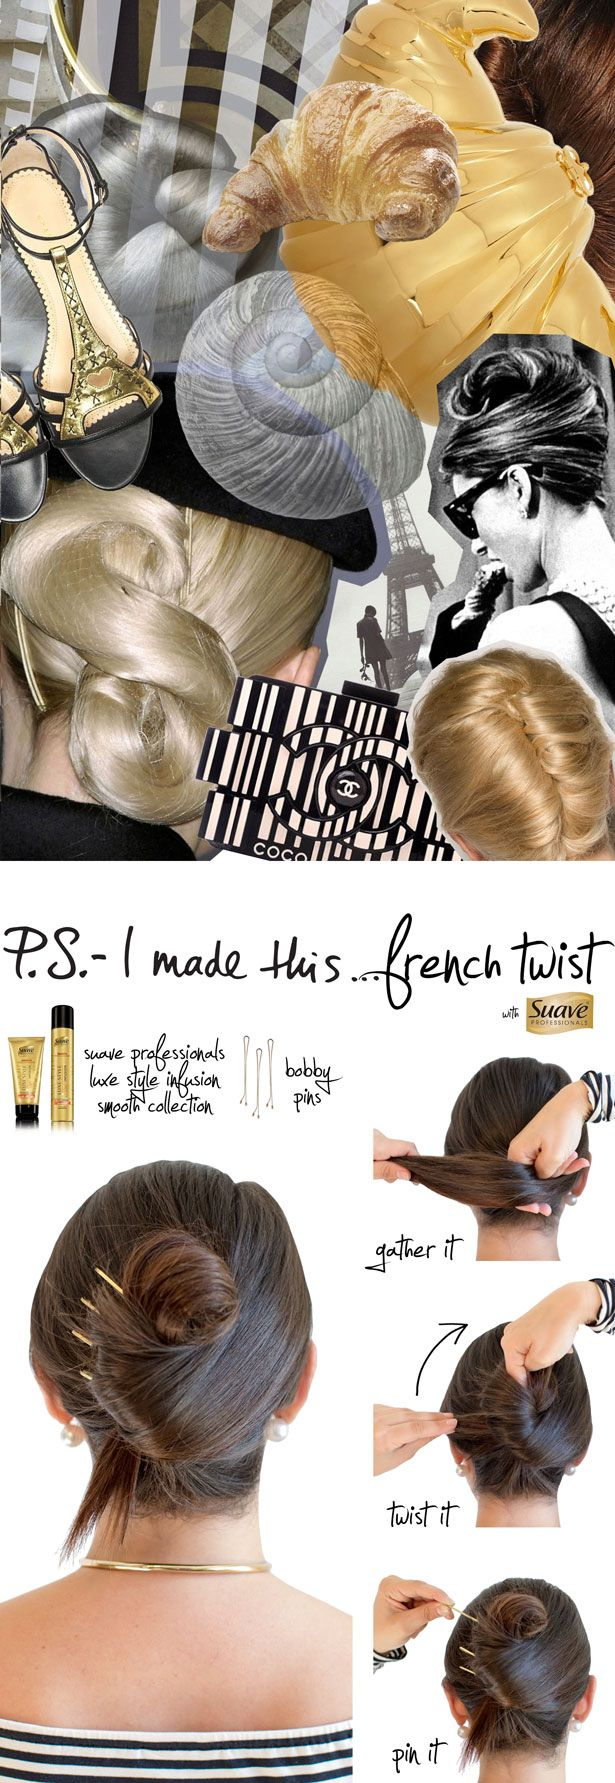 best hair images on pinterest make up looks pretty hair and